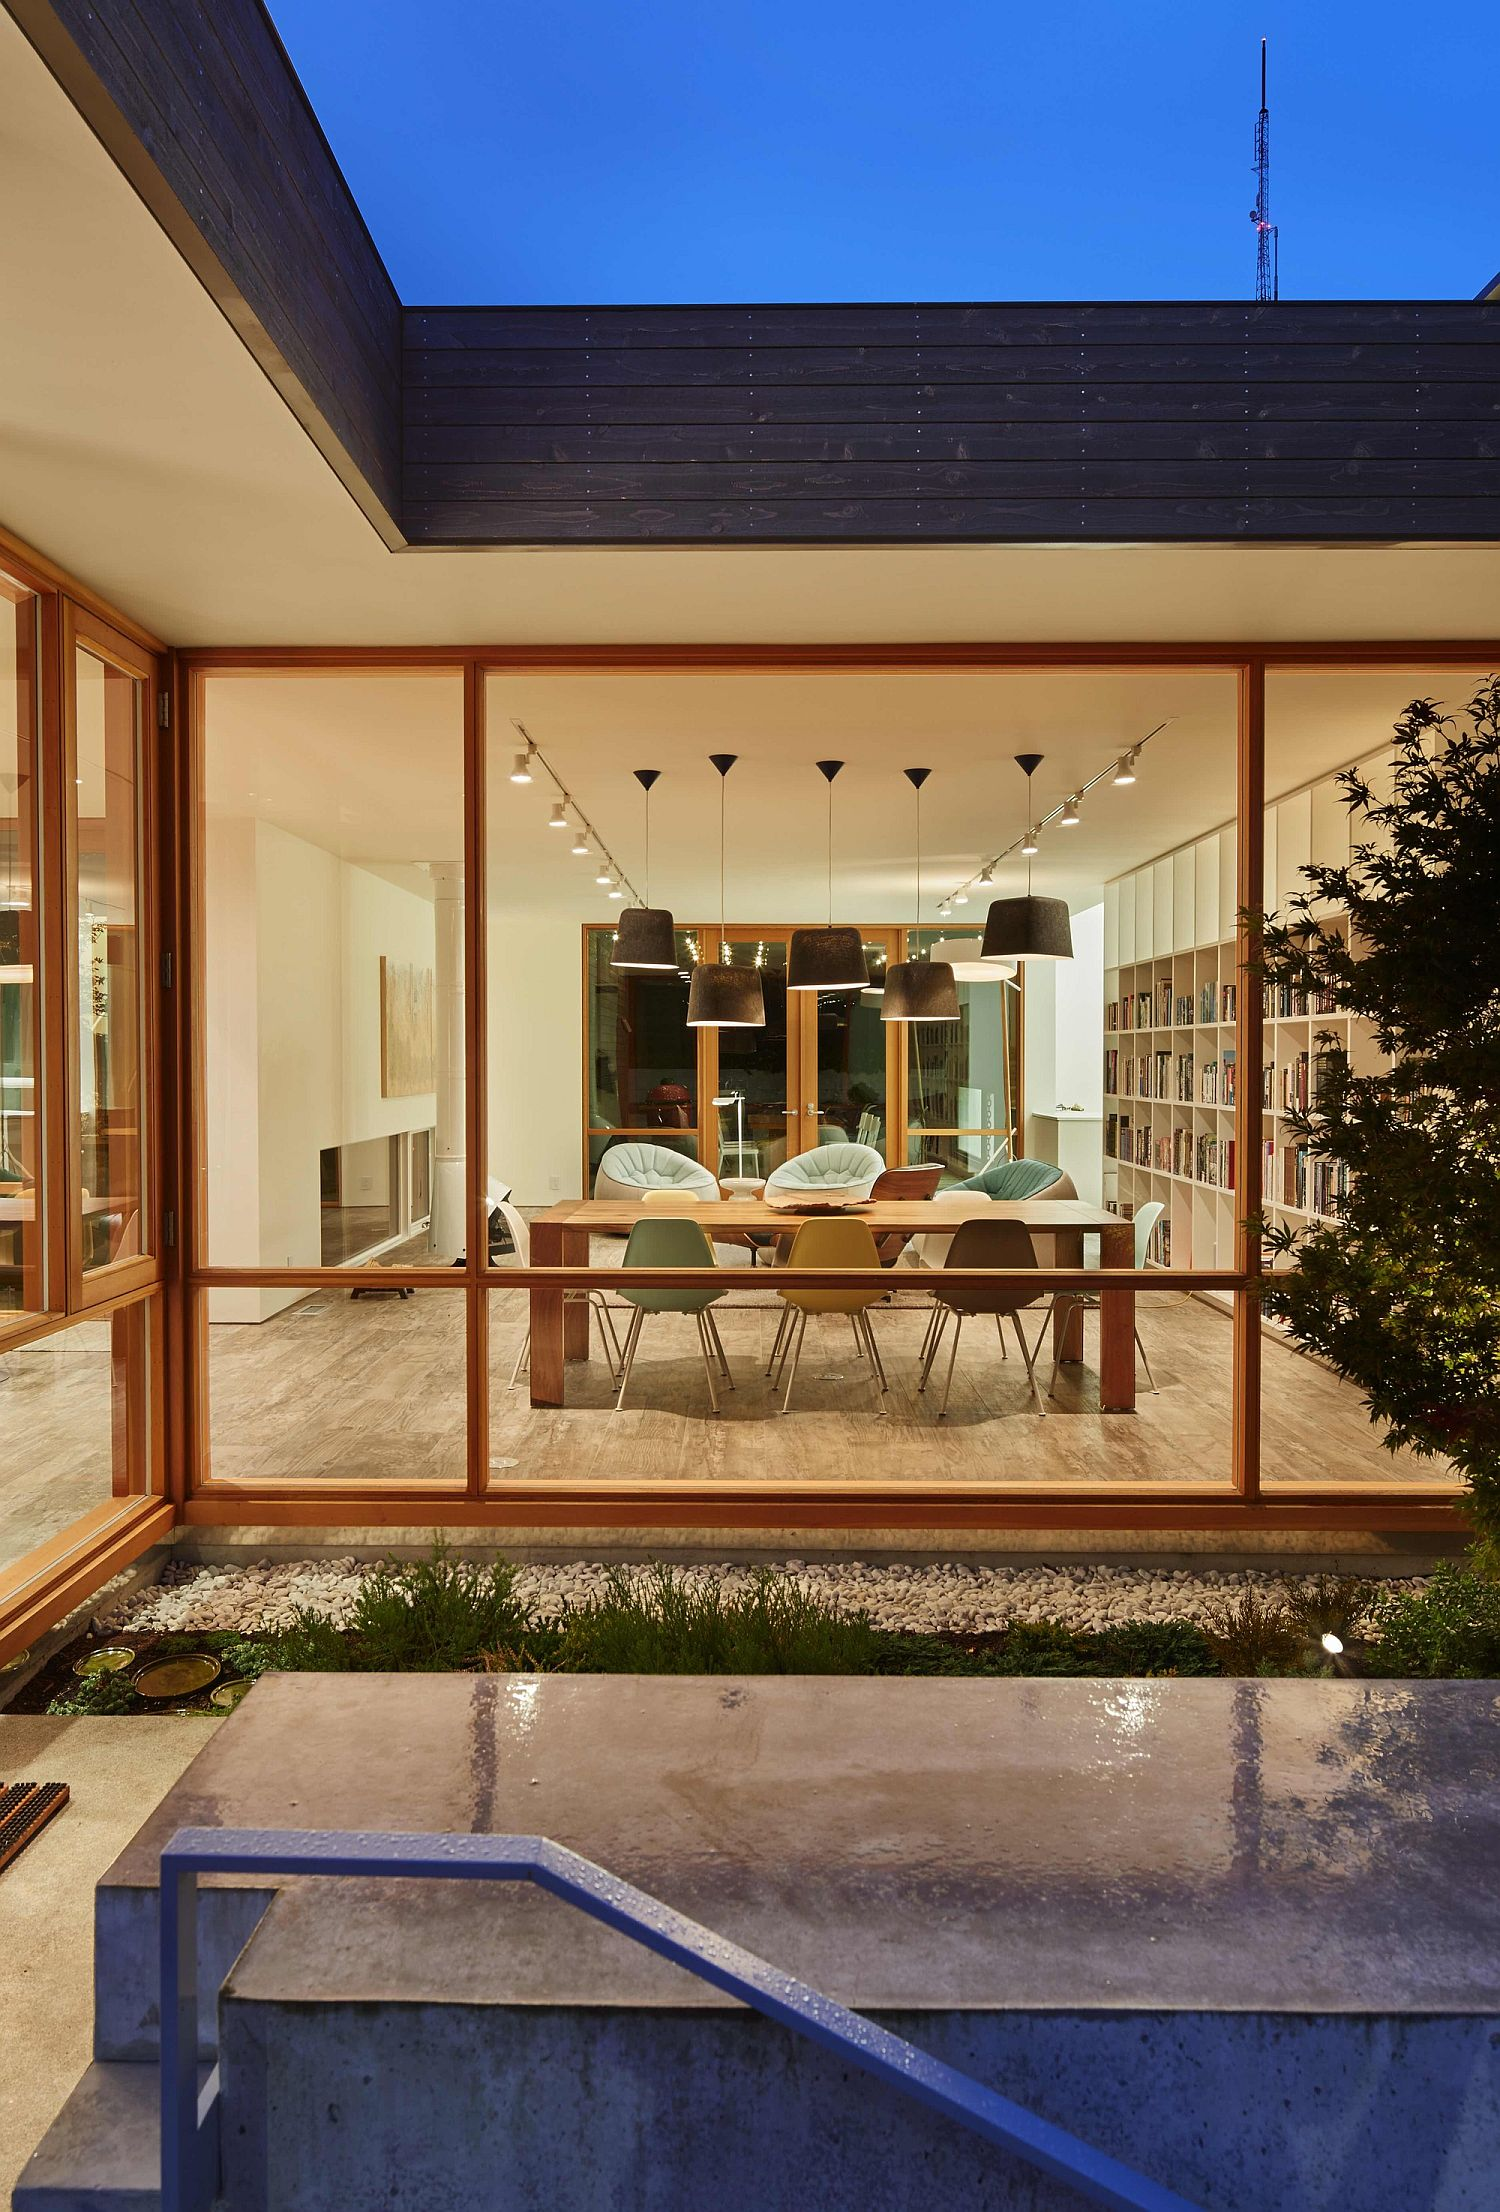 Dining space and open living space of the Artist Residence connected with the courtyard